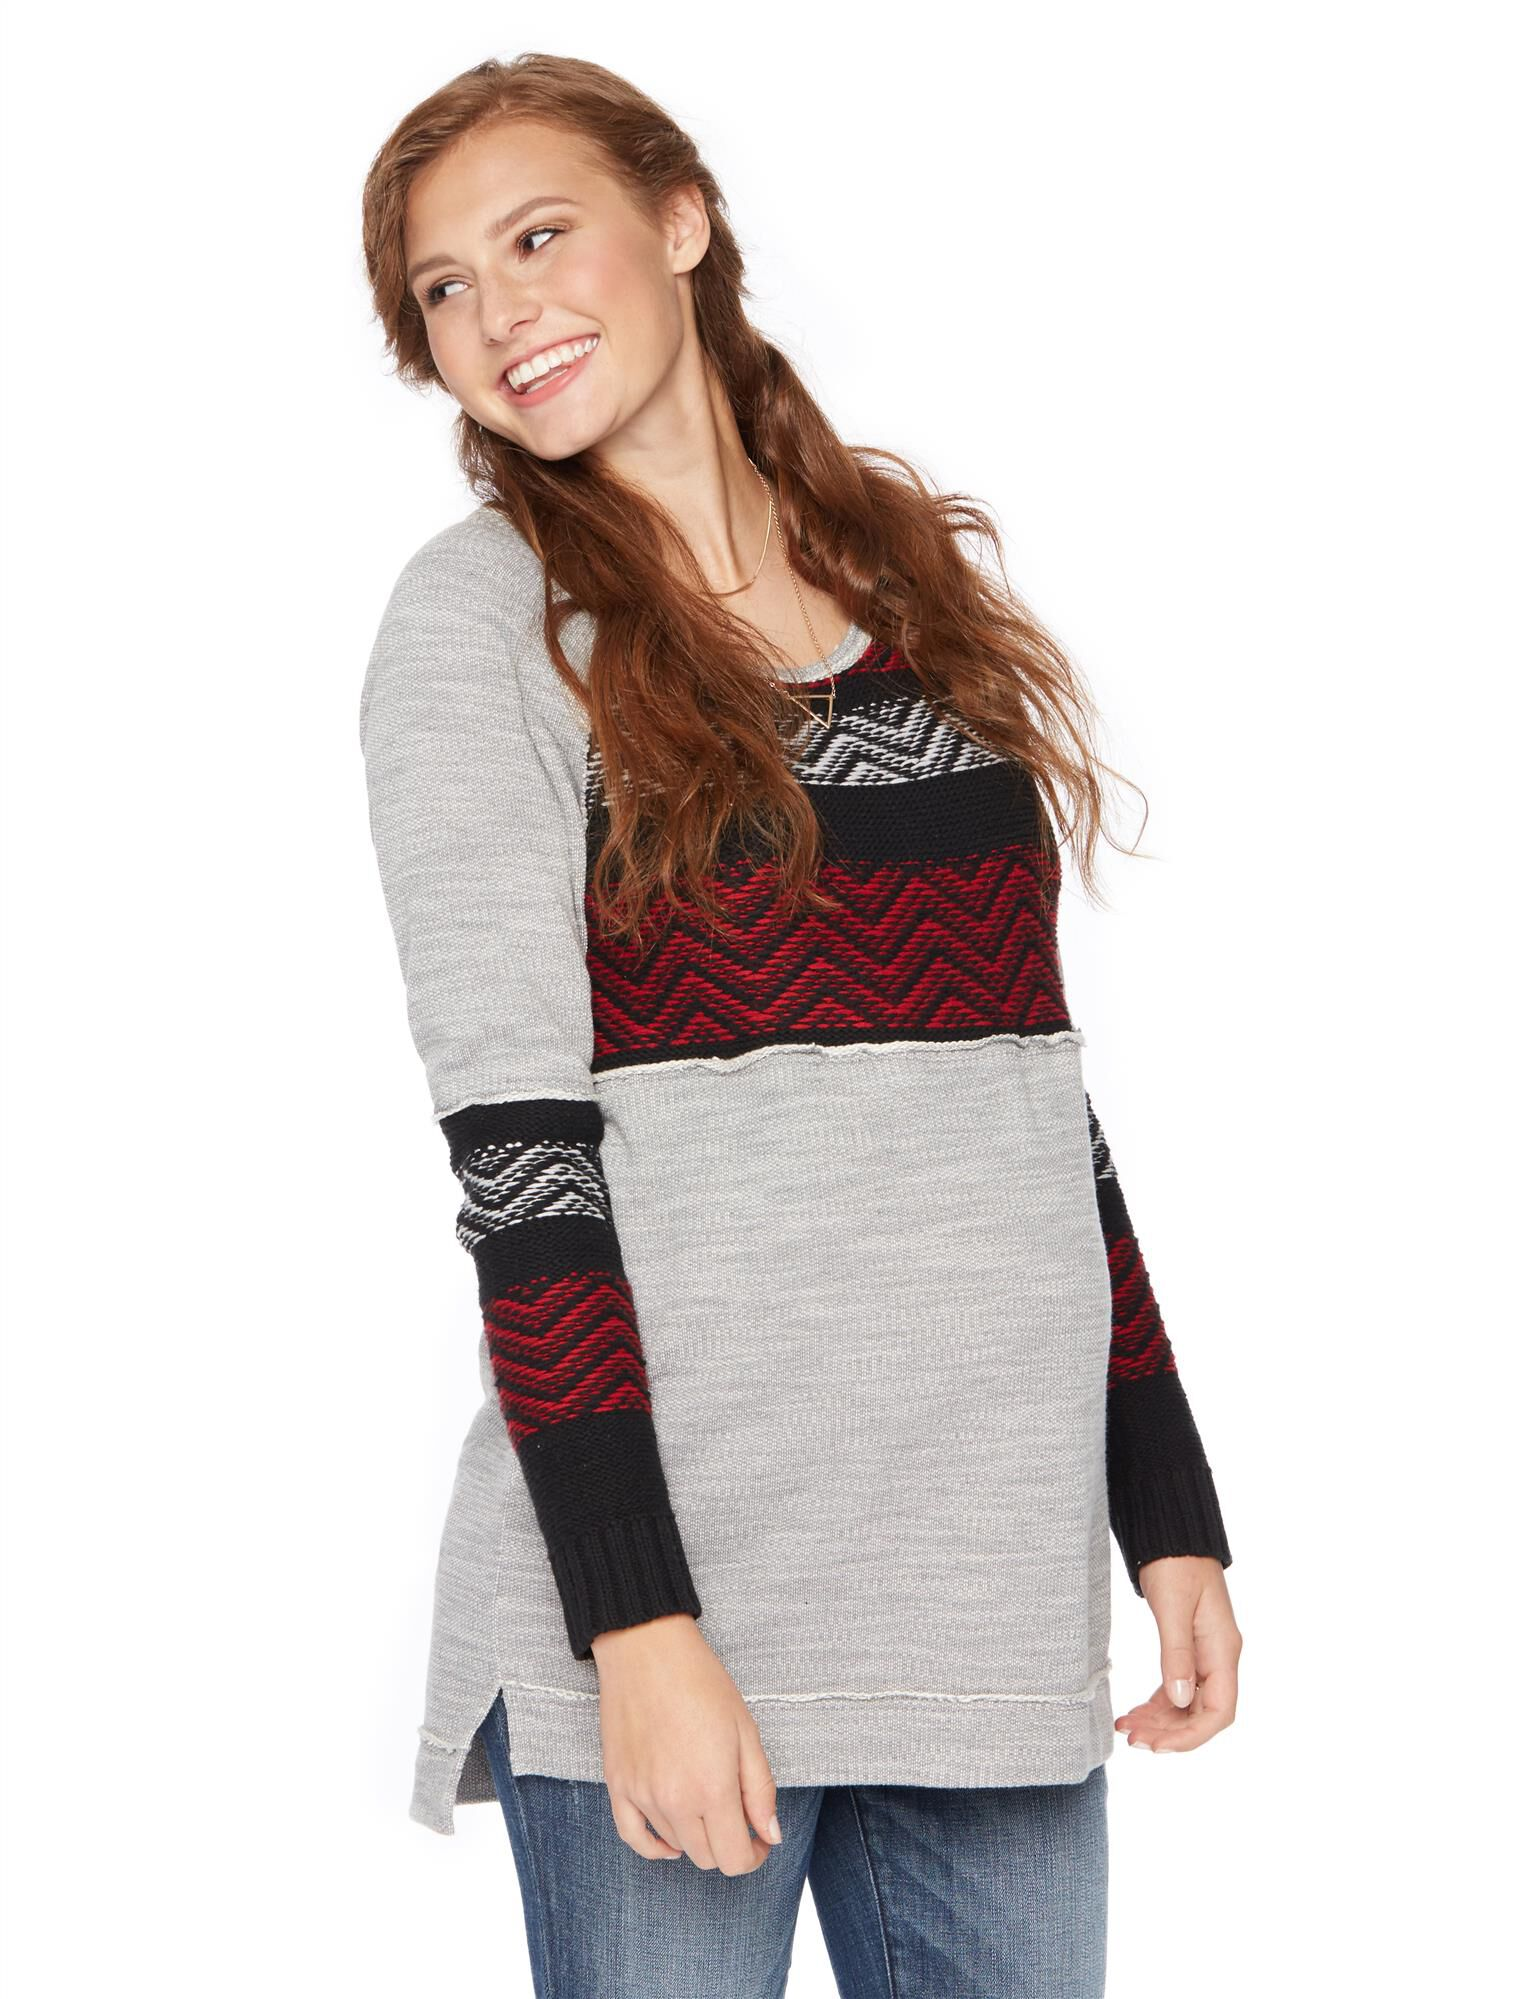 Wendy Bellissimo Zig Zag Knit Maternity Sweater